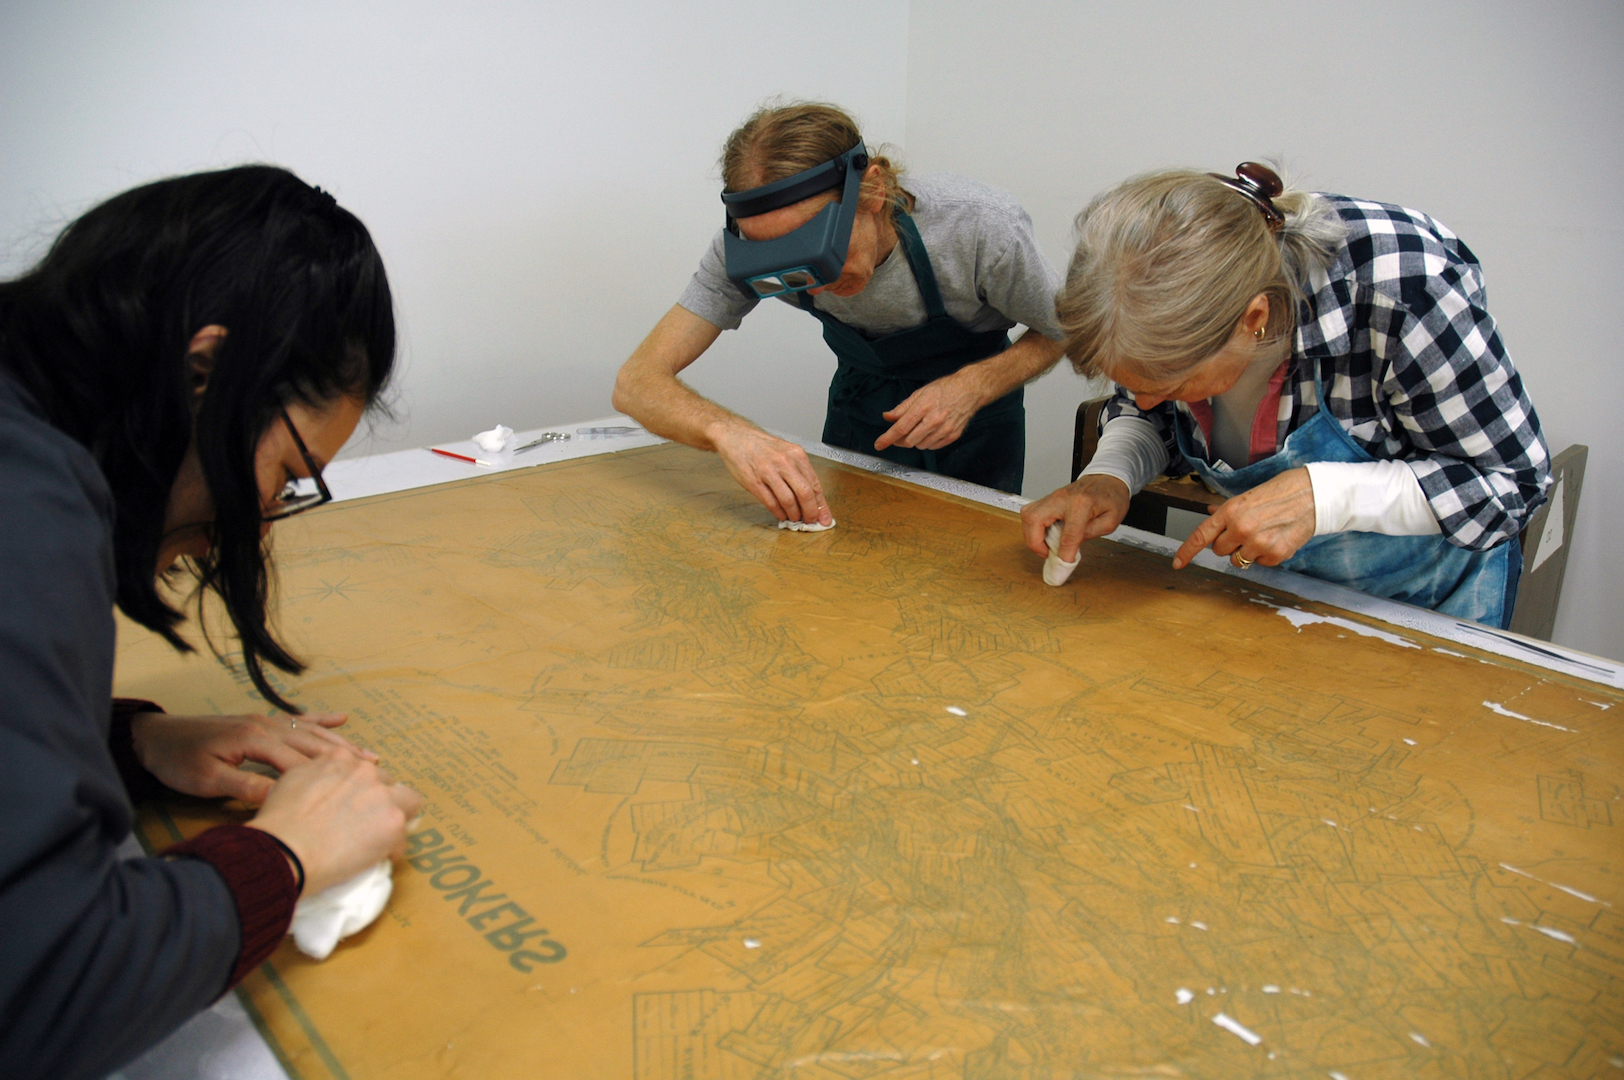 Stacey, Jeff and Annabelle removing adhesive residues from the back of the map.